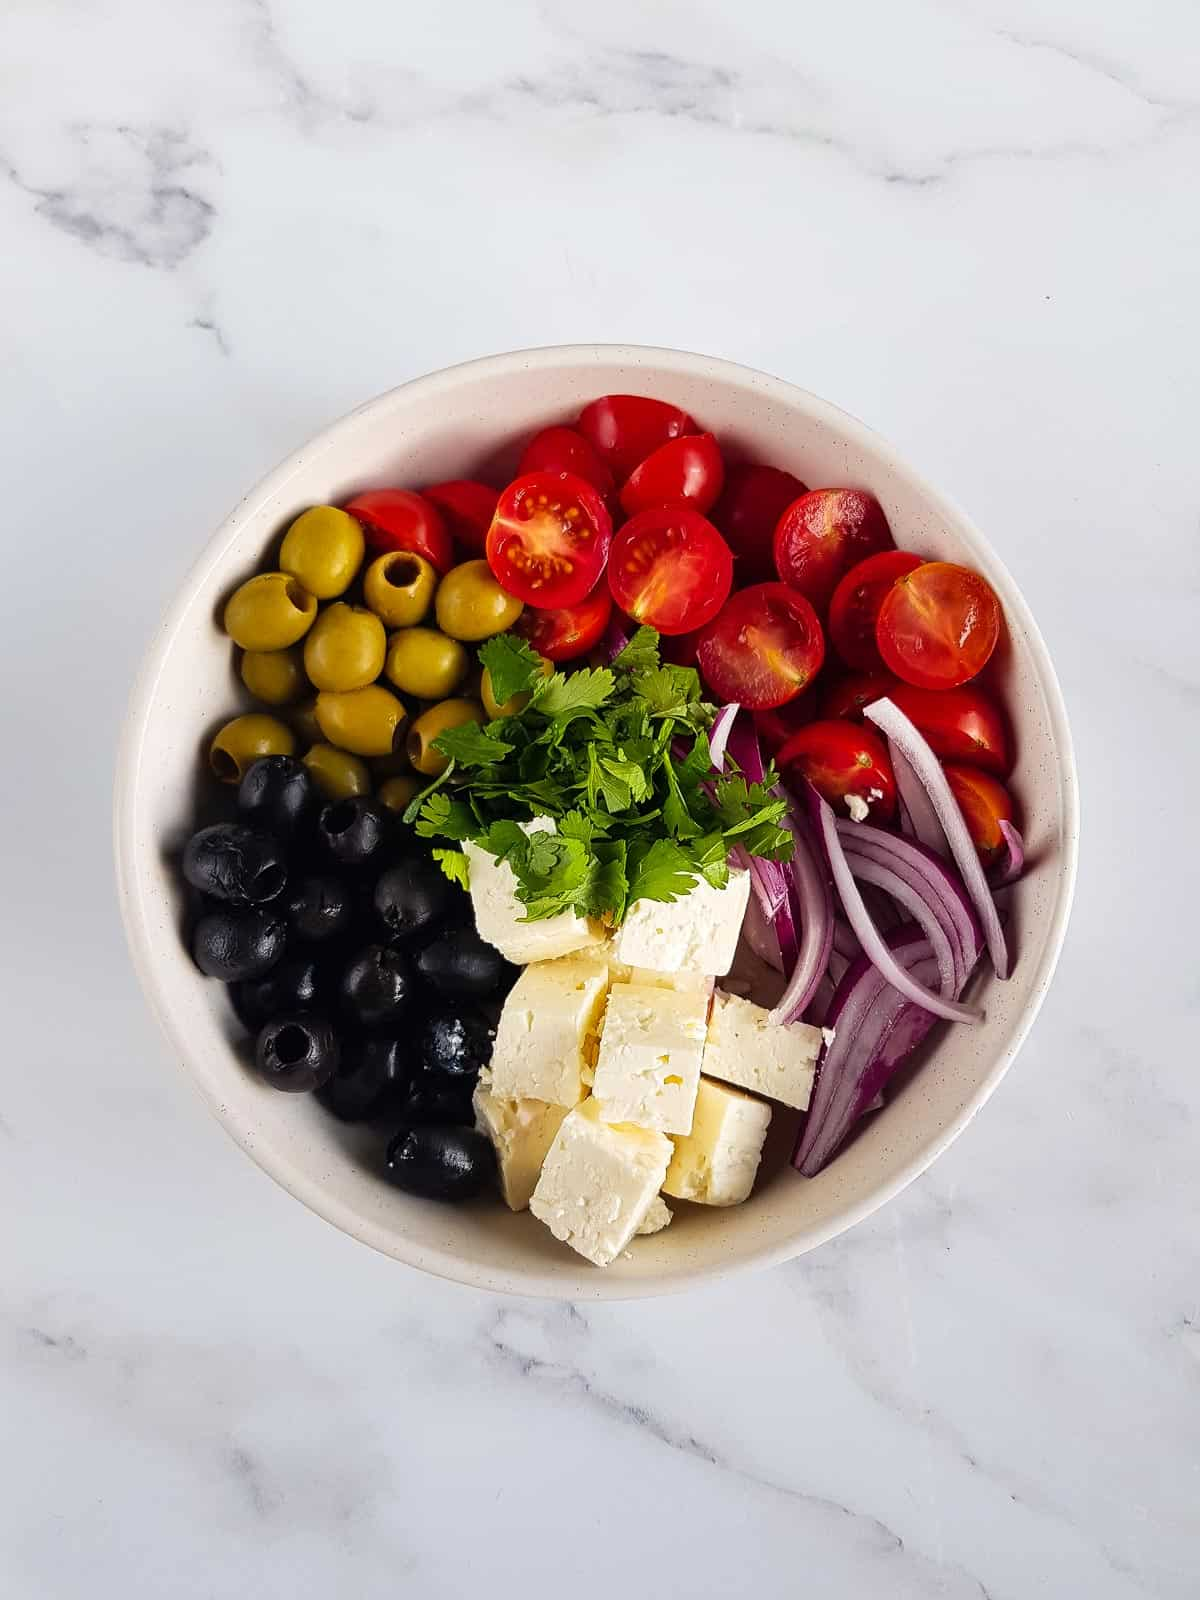 Black and green olives, tomatoes, feta, herbs and red onion in a bowl.